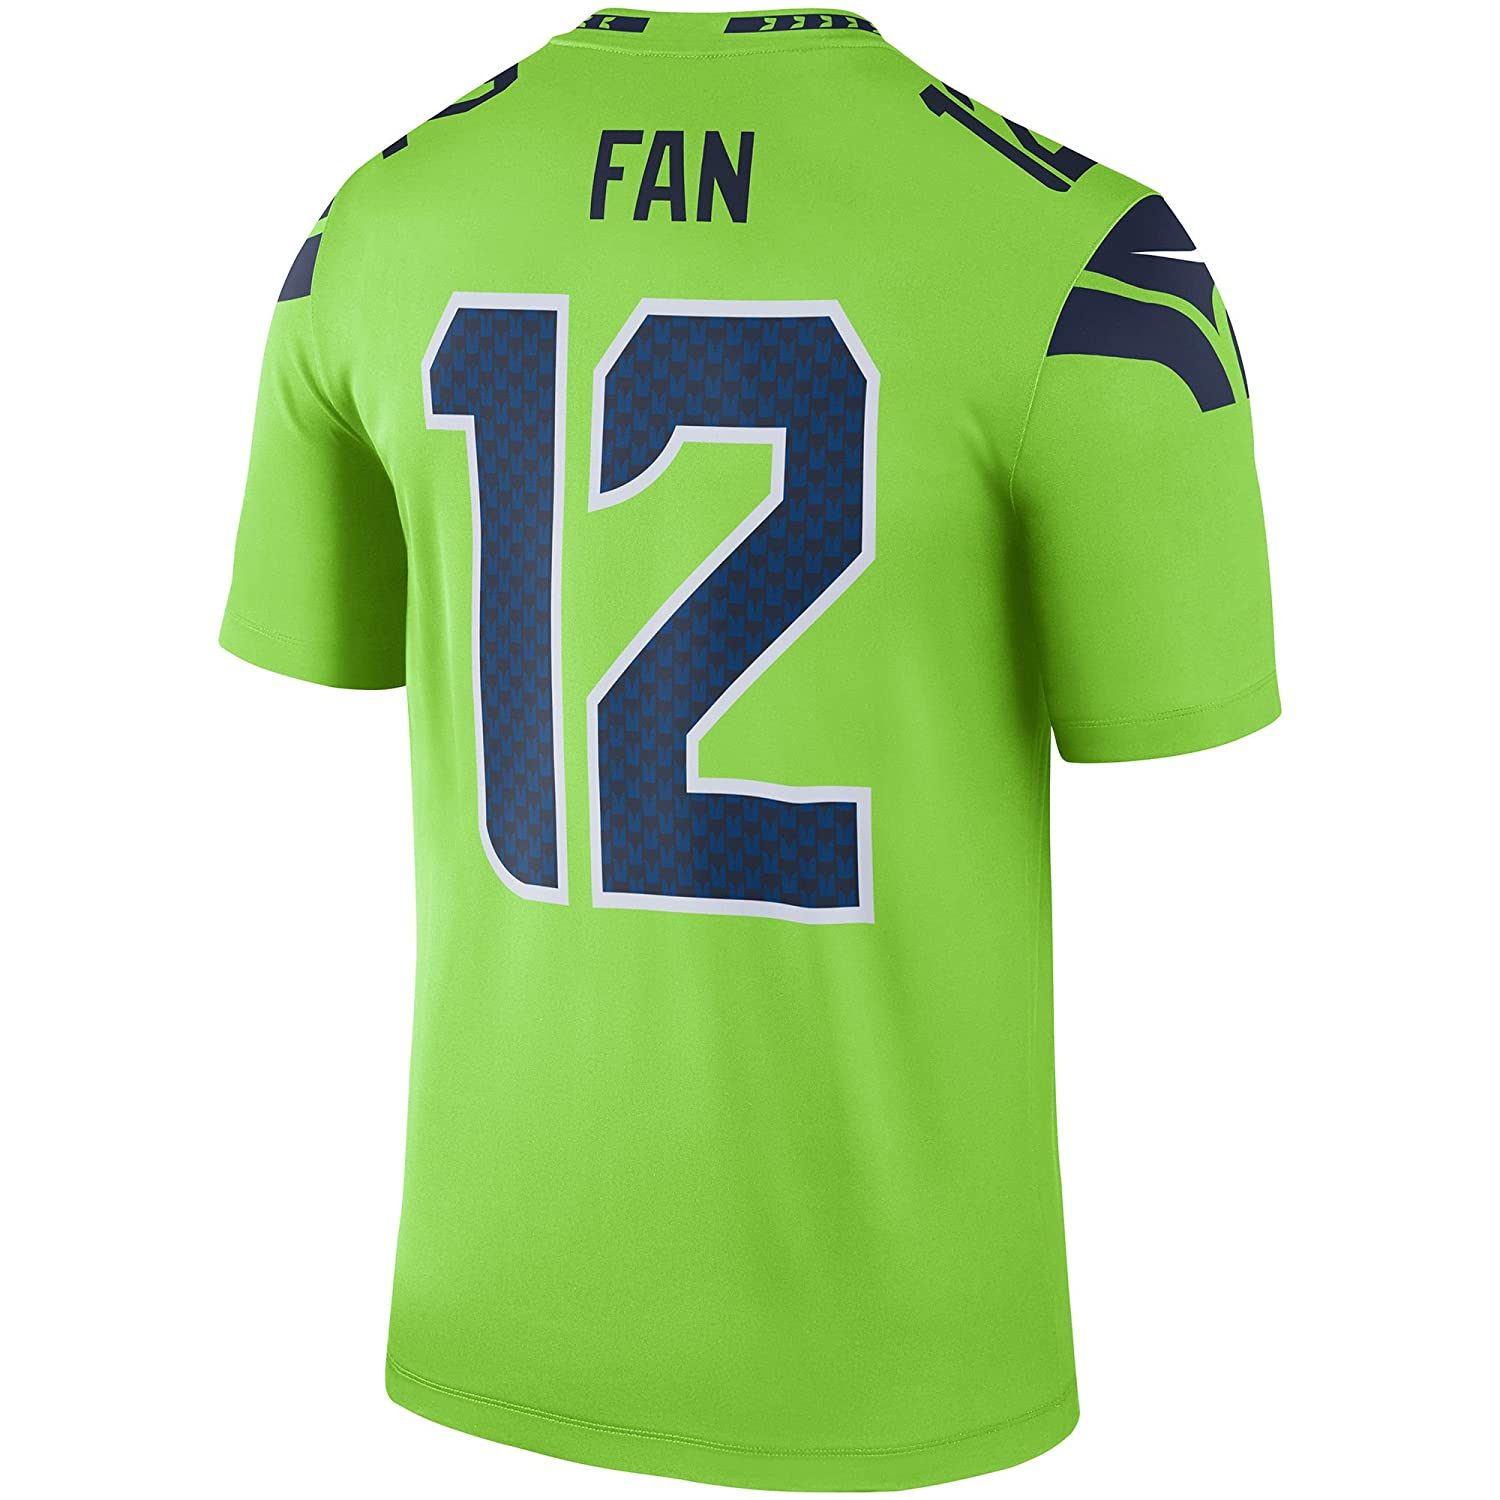 Amazon.com  Nike Seattle Seahawks  12 Fan Color Rush Neon Green Legend  Dri-FIT Jersey - Men s Medium  Clothing a50646842